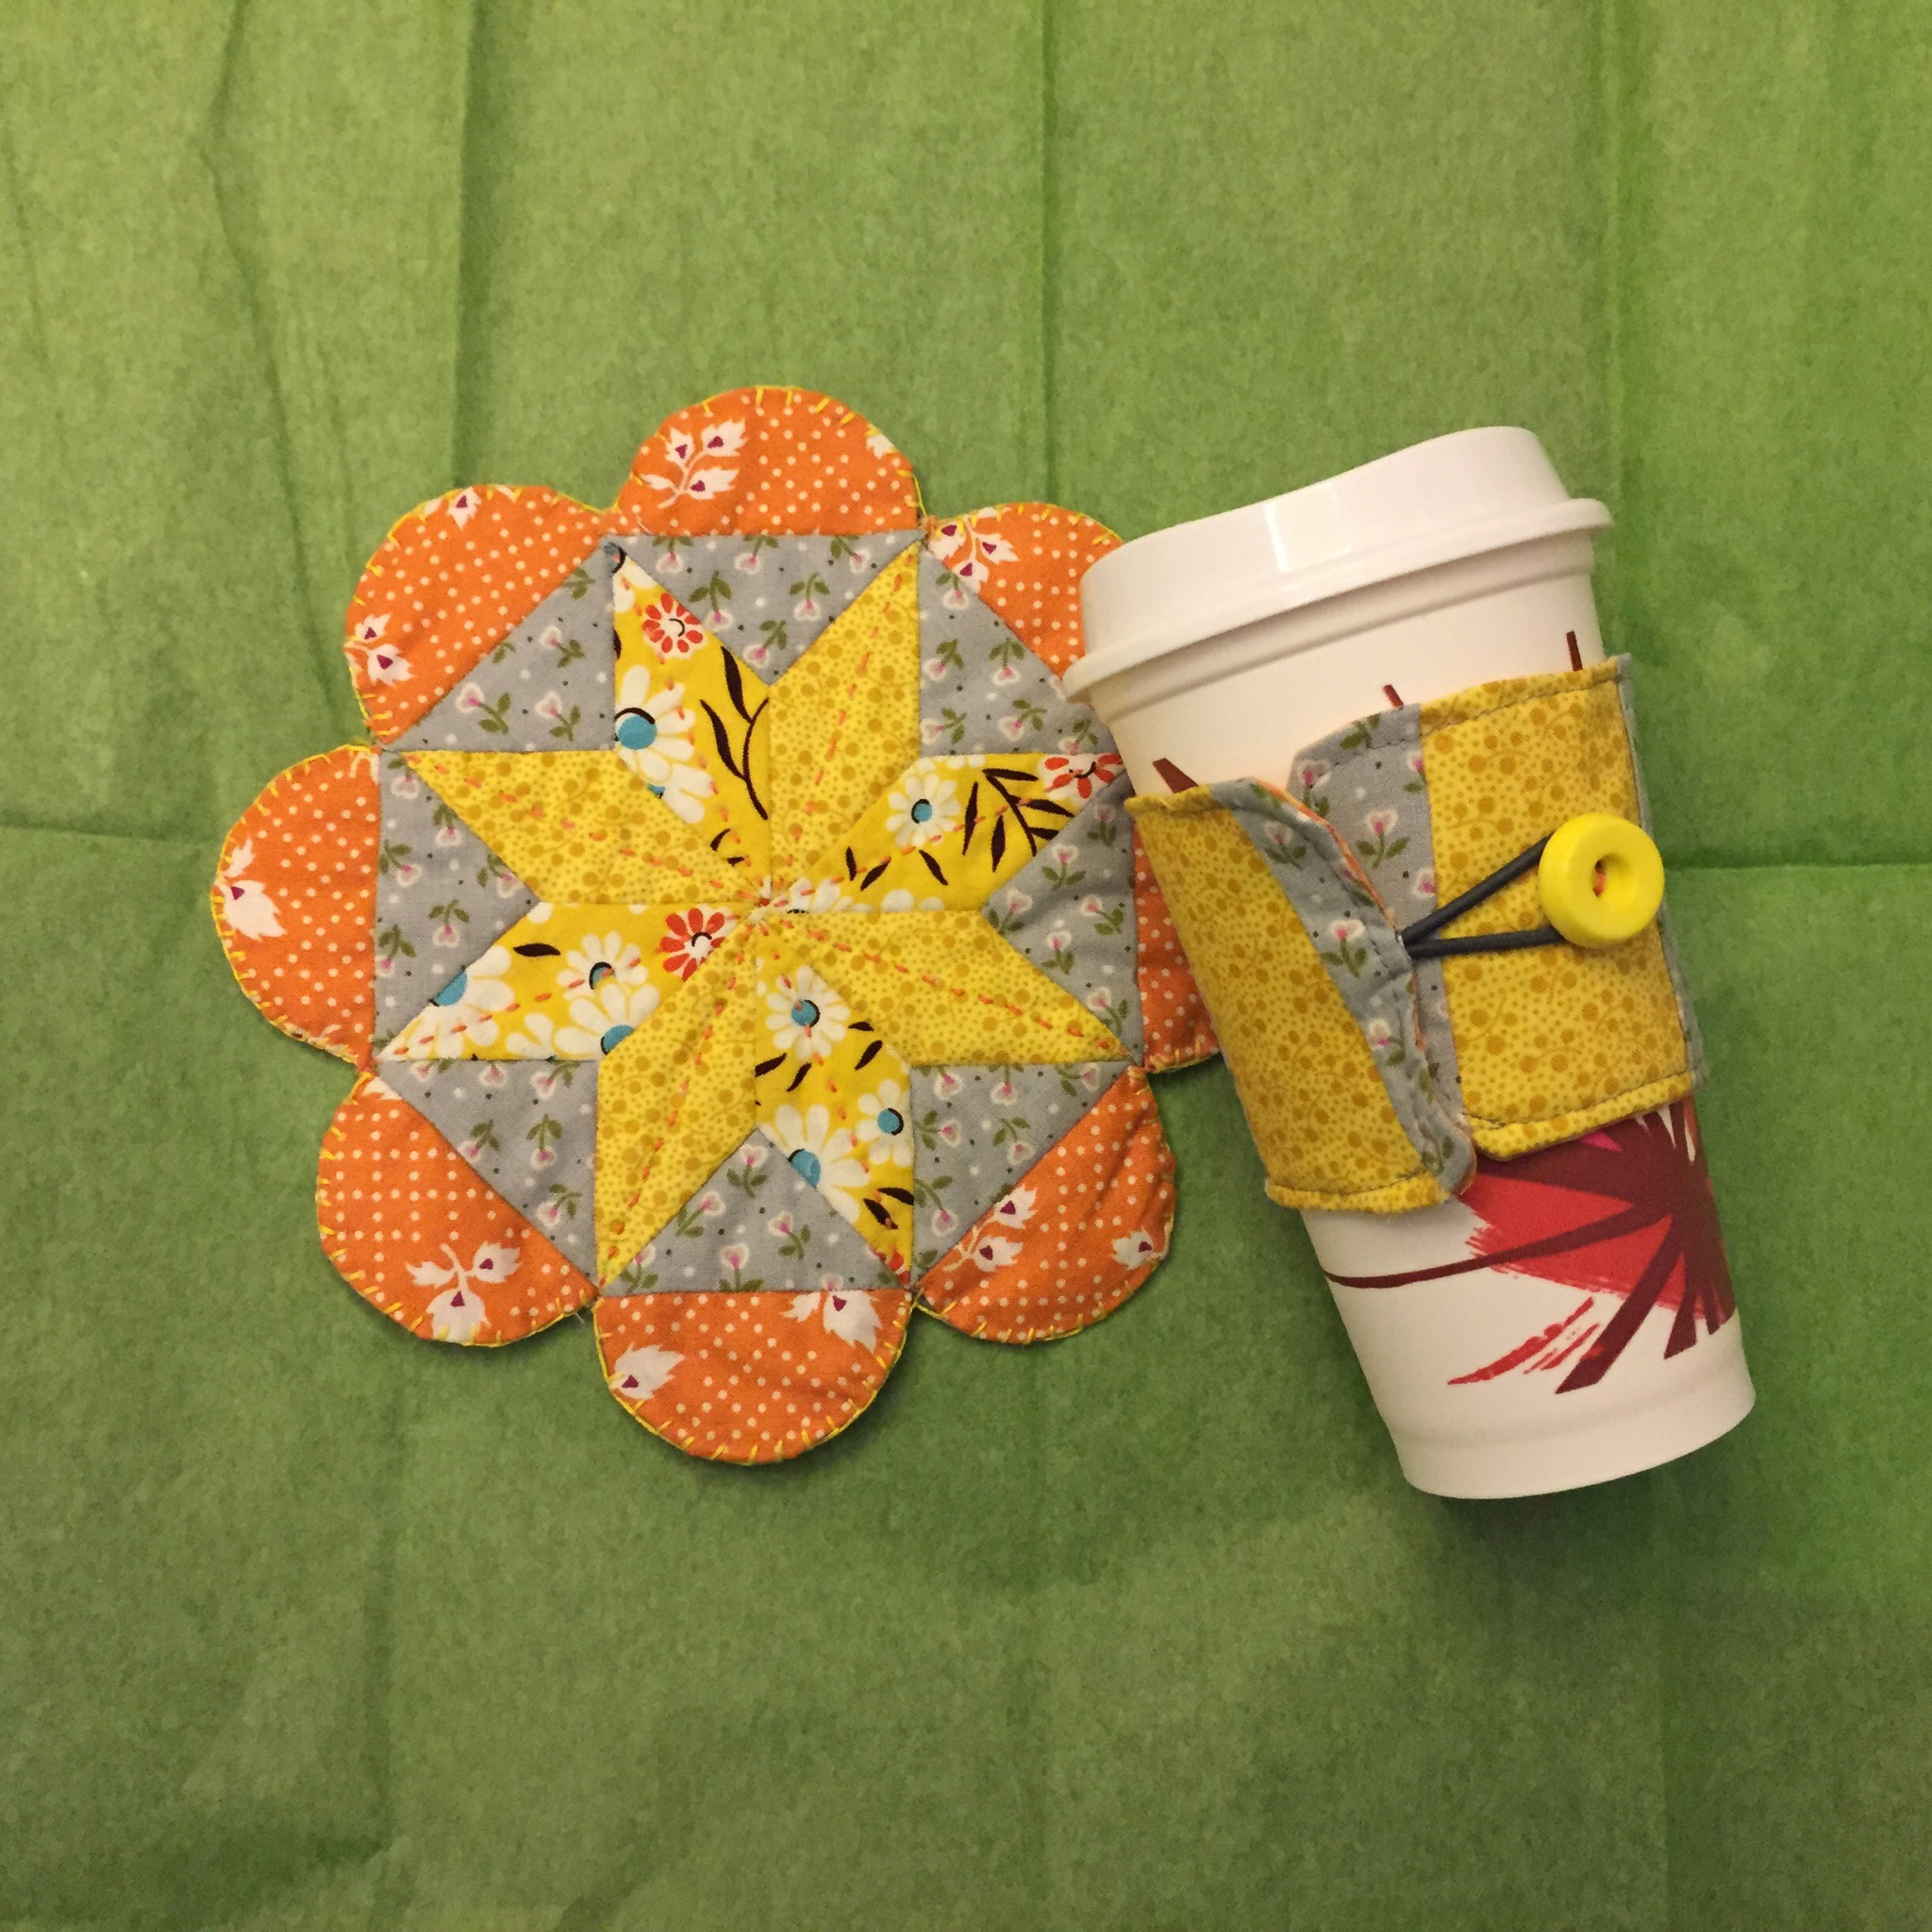 FlowerPOW Mug Rug Gift Set from Hugs are Fun